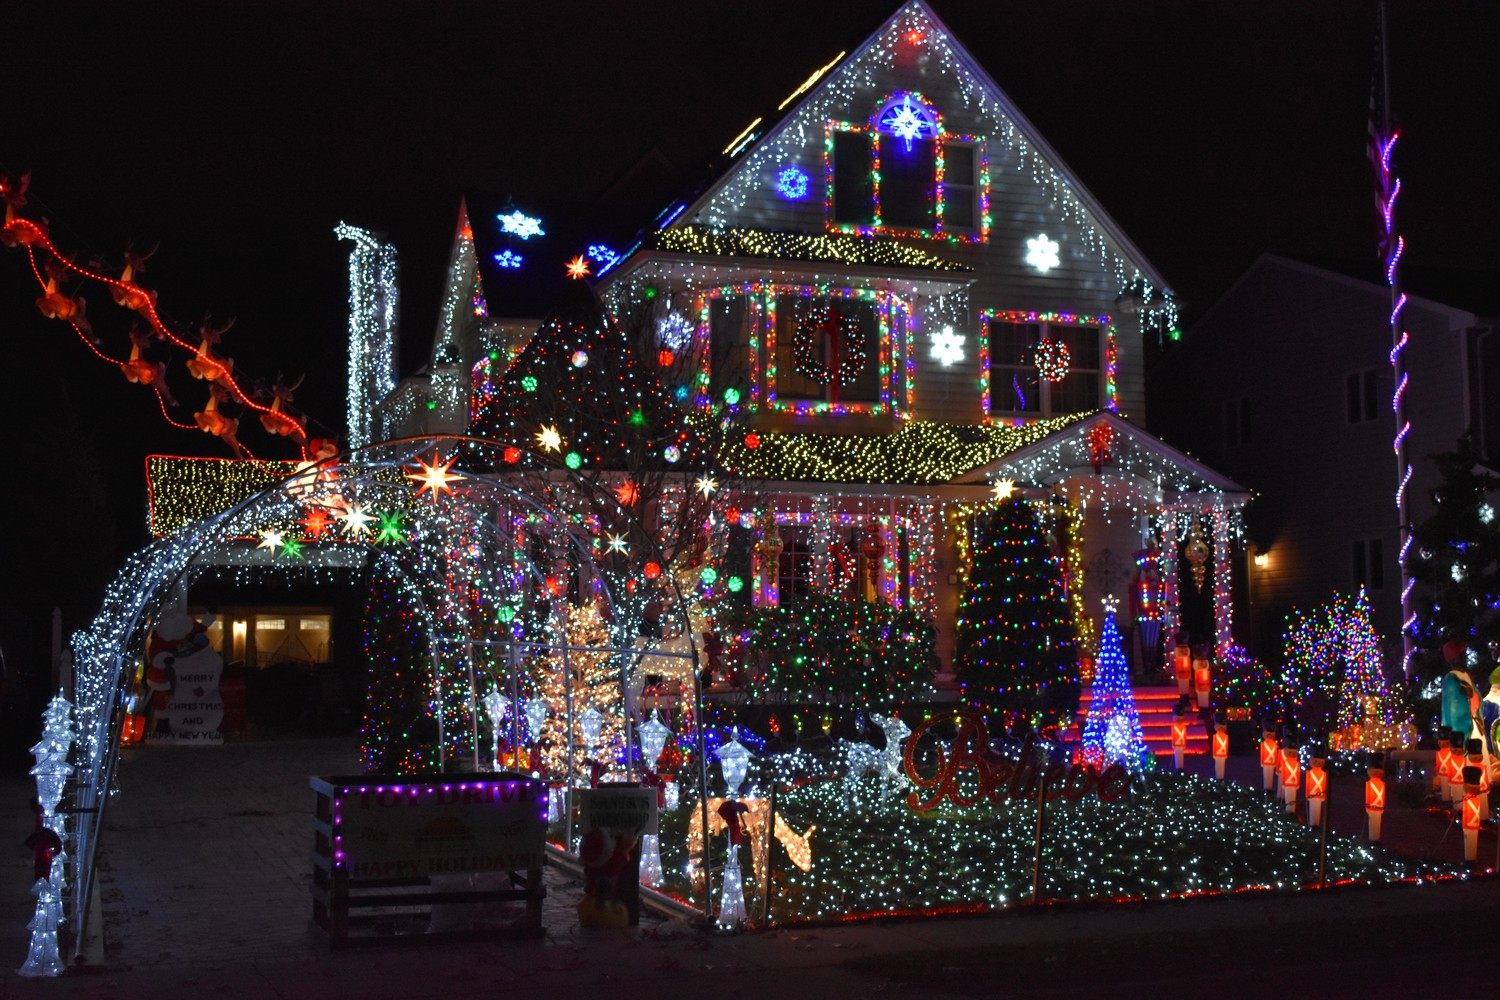 Over the span of more than a month, Rich McQuillan and his family transformed their Cedar Avenue home into a holiday spectacle, with a display that includes nearly 300,000 lights.